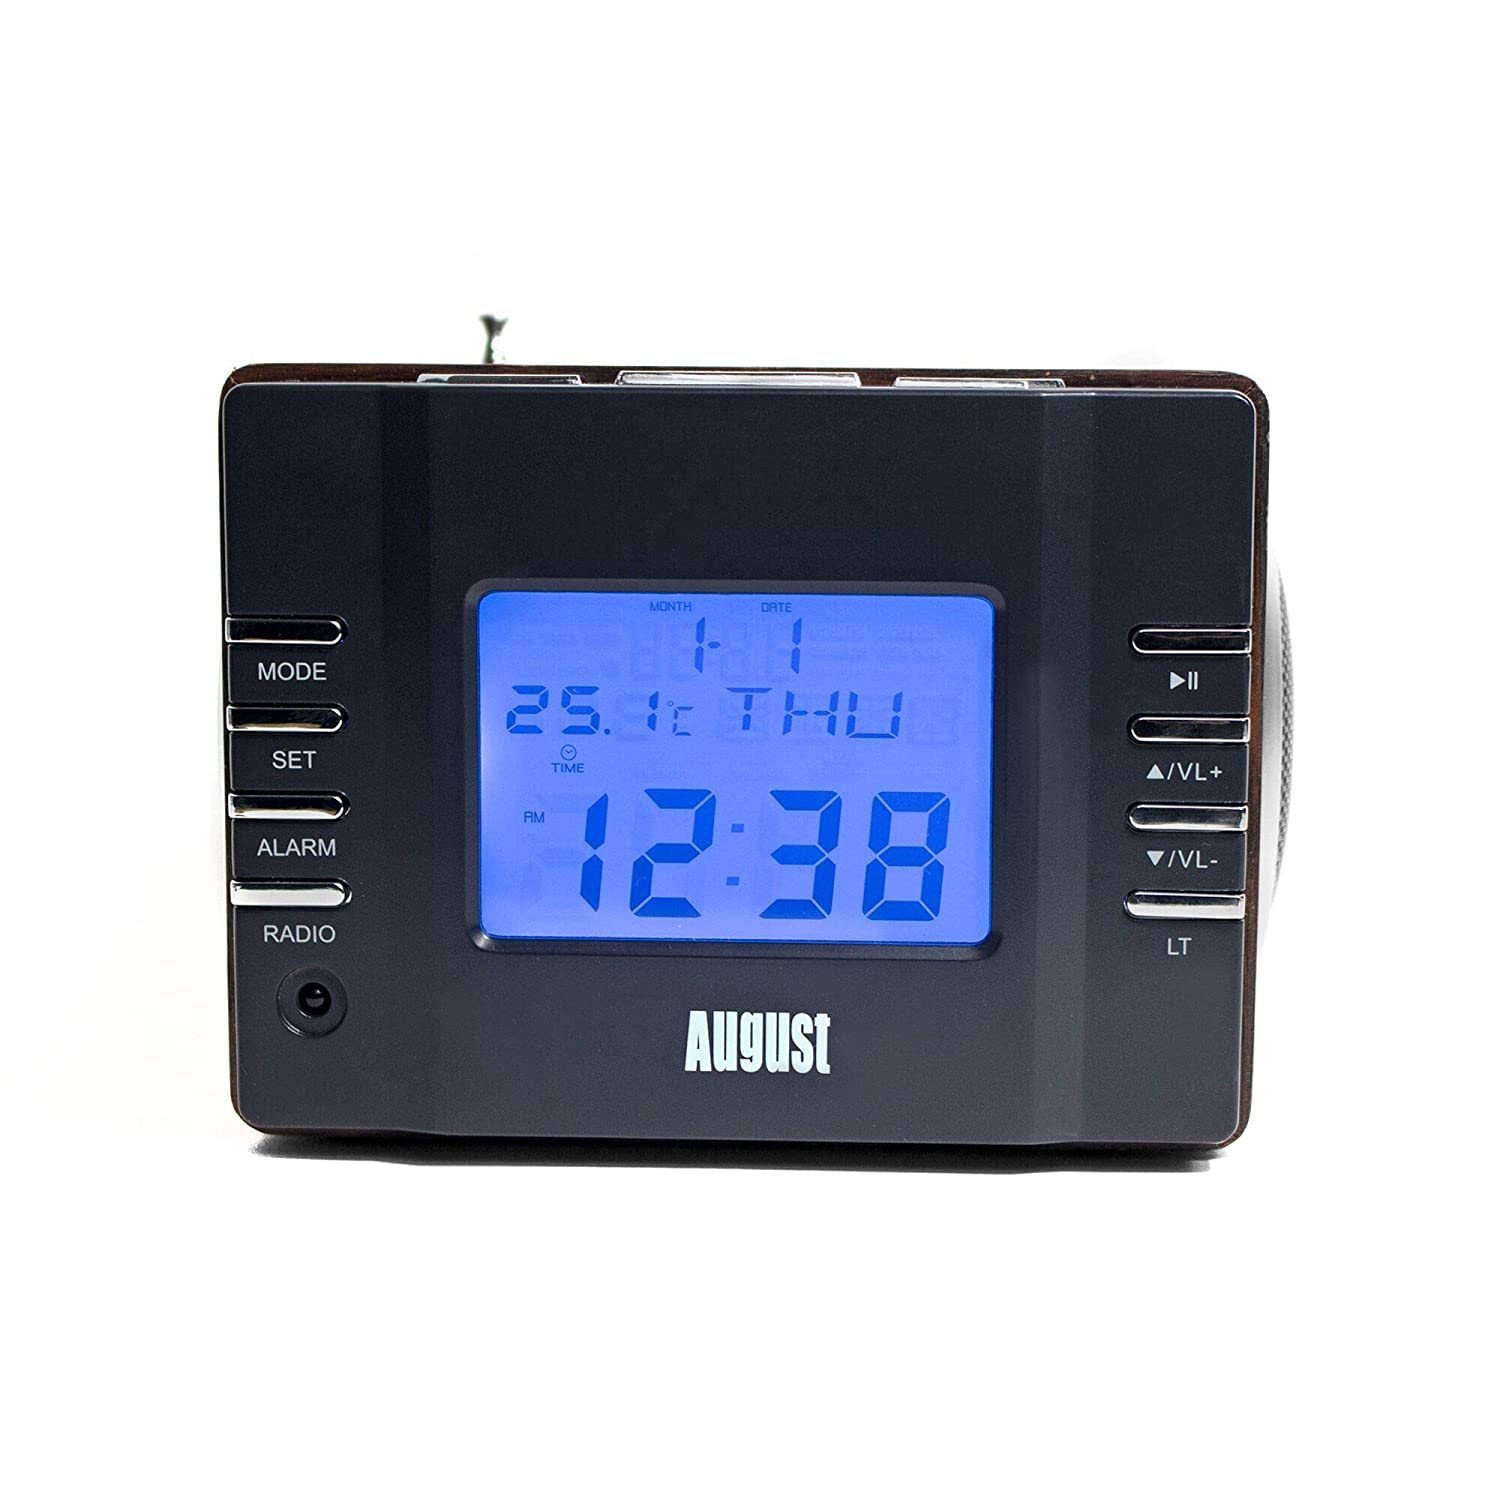 Radio Despertador – August MB300 - MP3 Player/Equipo estéreo – Radio Reloj (Negro)